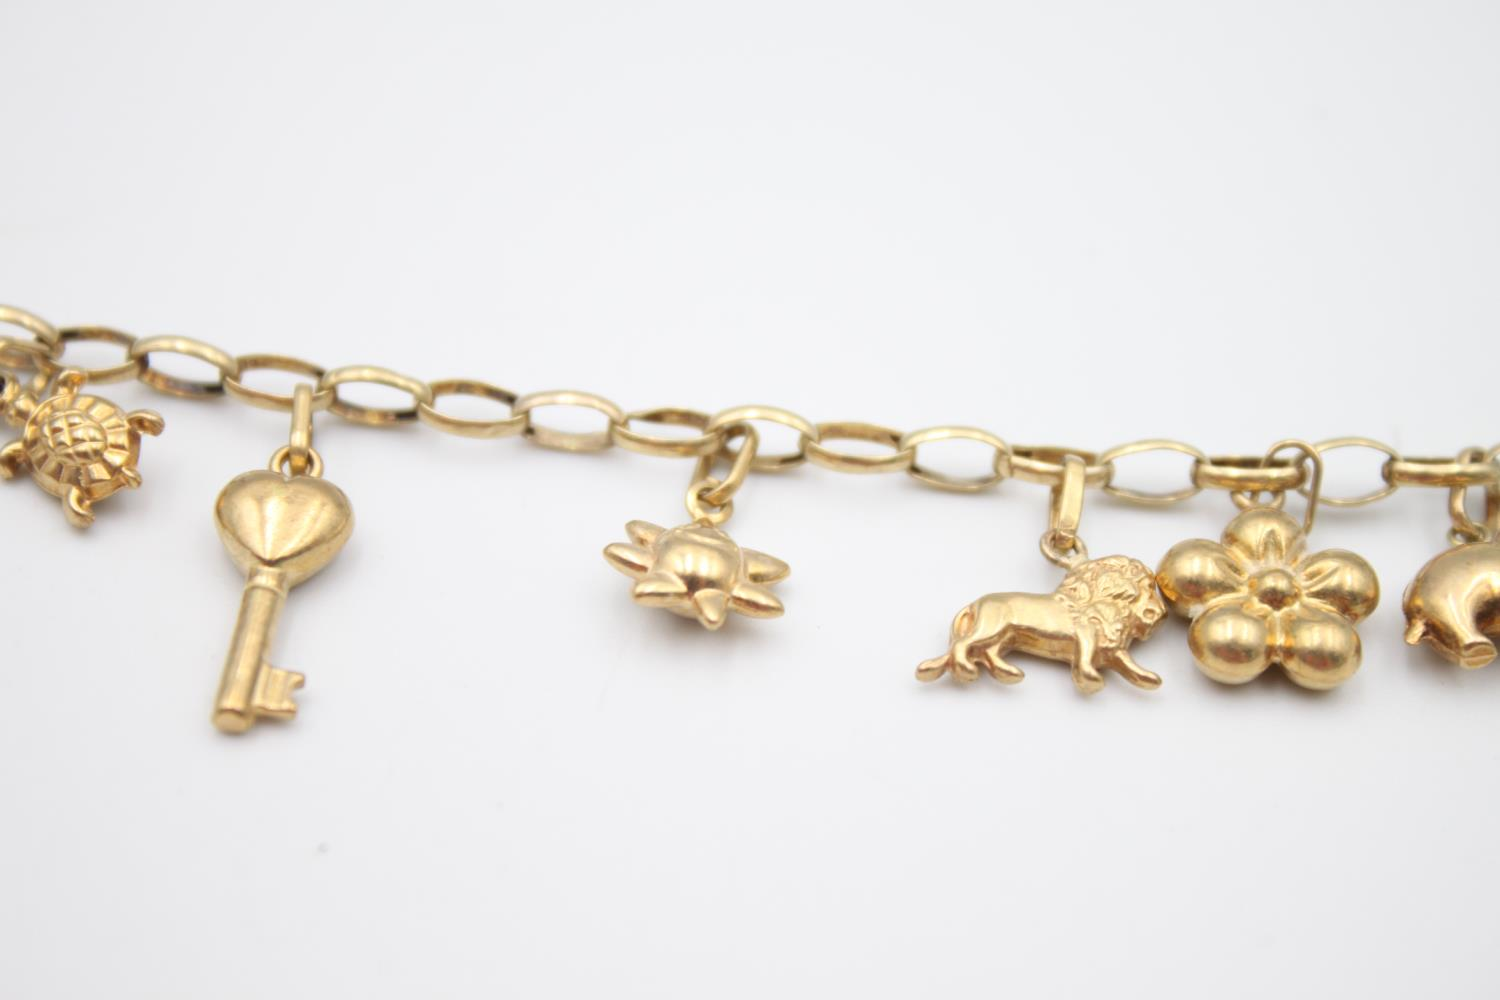 vintage 9ct gold rolo link charm bracelet with a variety of charms 5.7g - Image 5 of 7